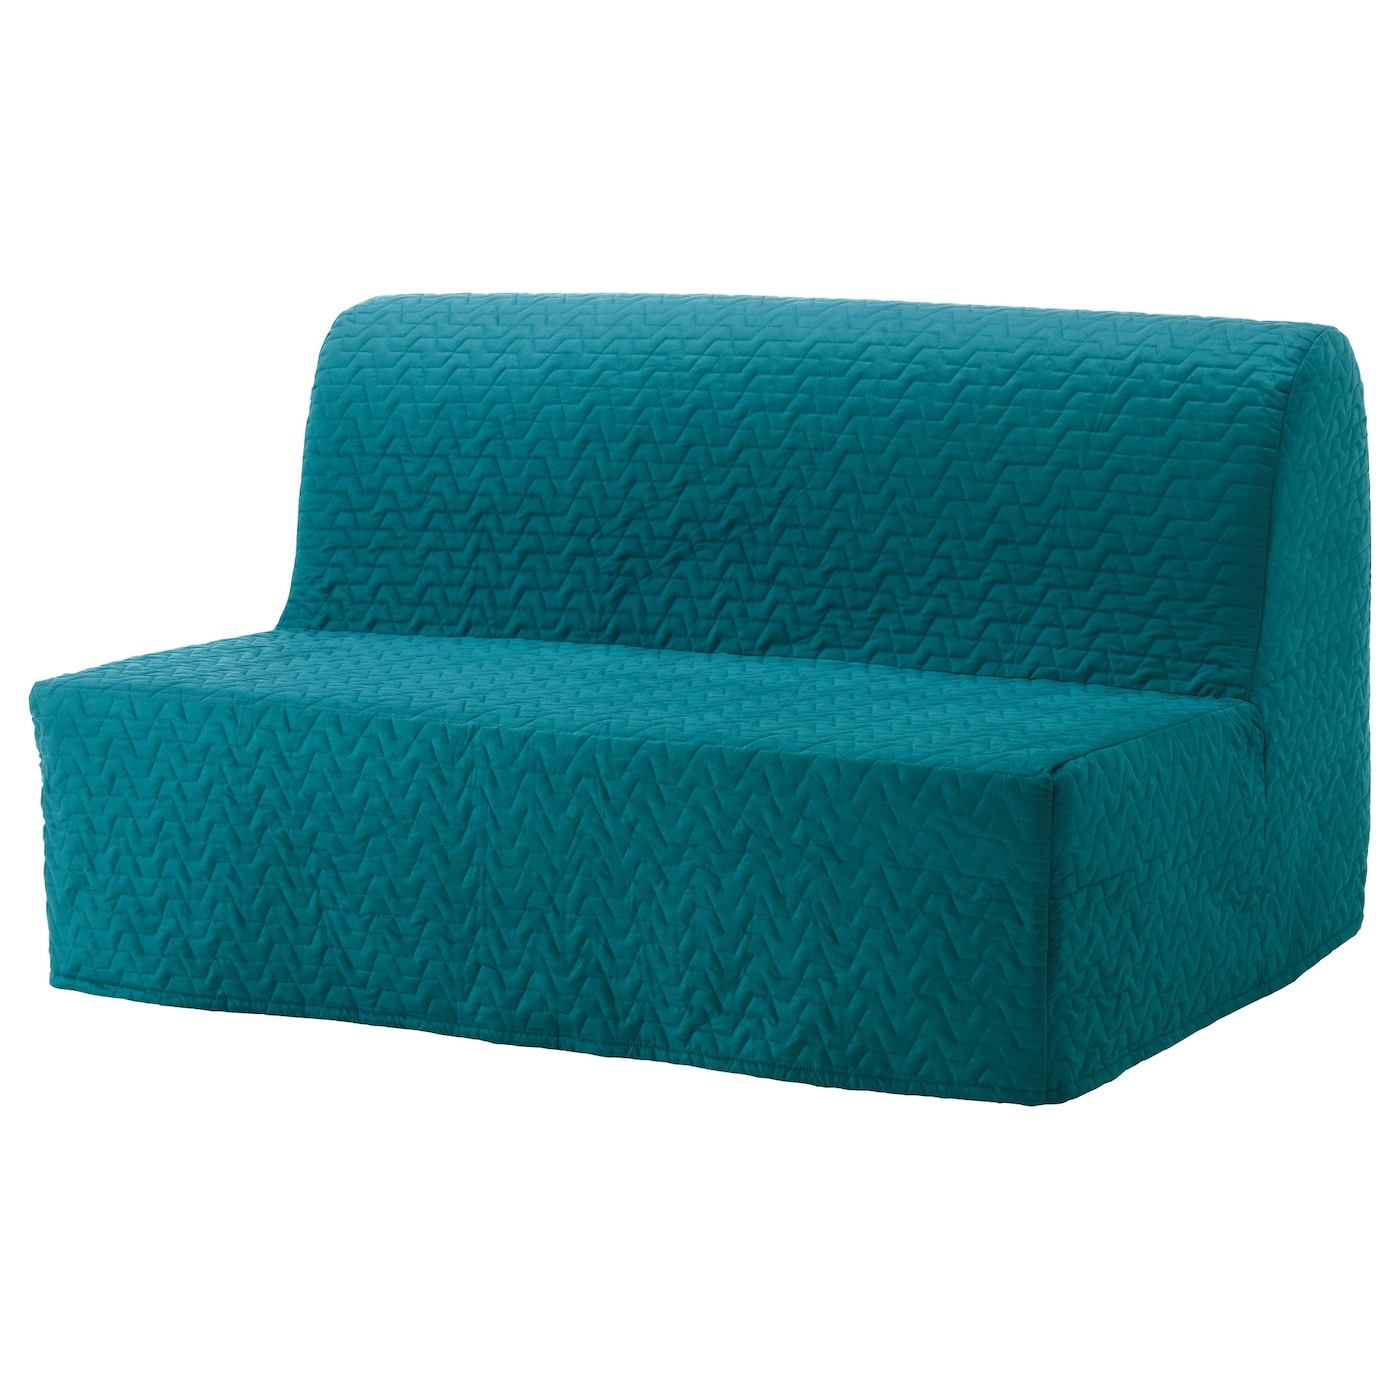 Sofa Foam Leeds Lycksele Murbo Two Seat Sofa Bed Vallarum Turquoise